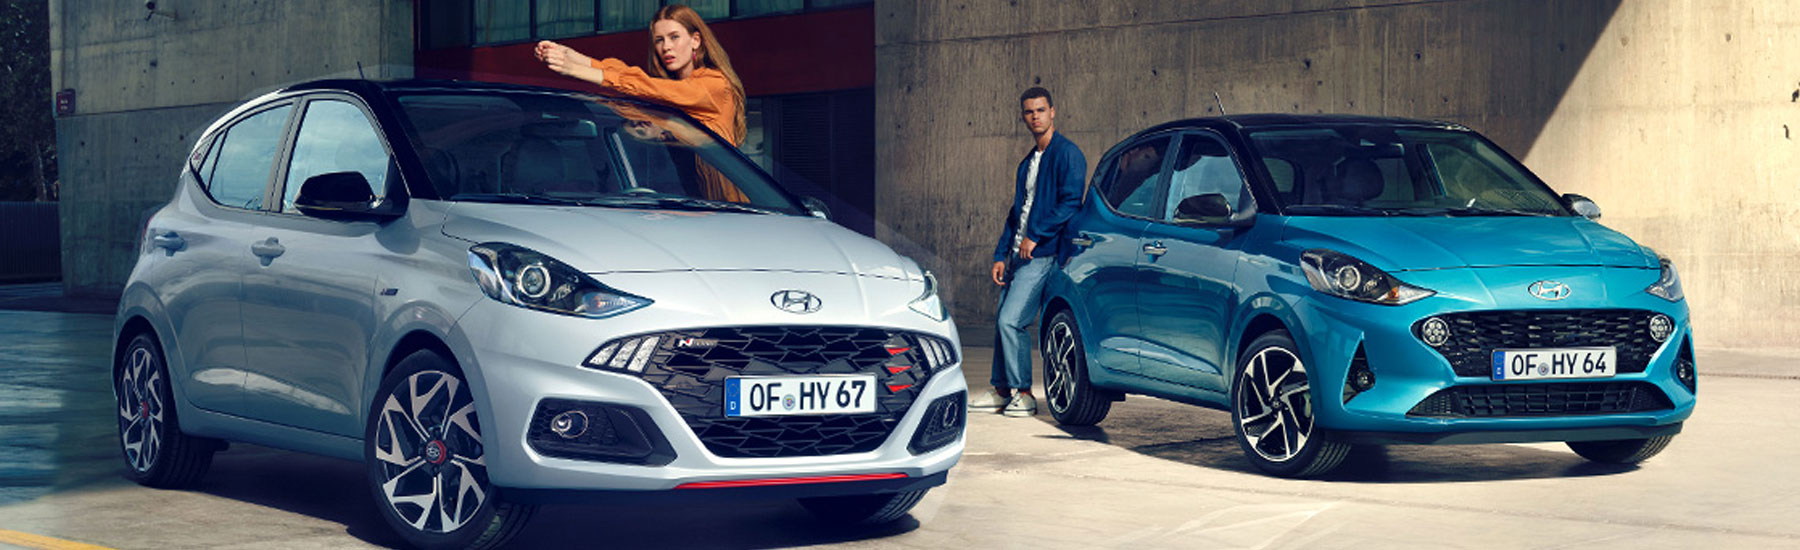 The all-new i10